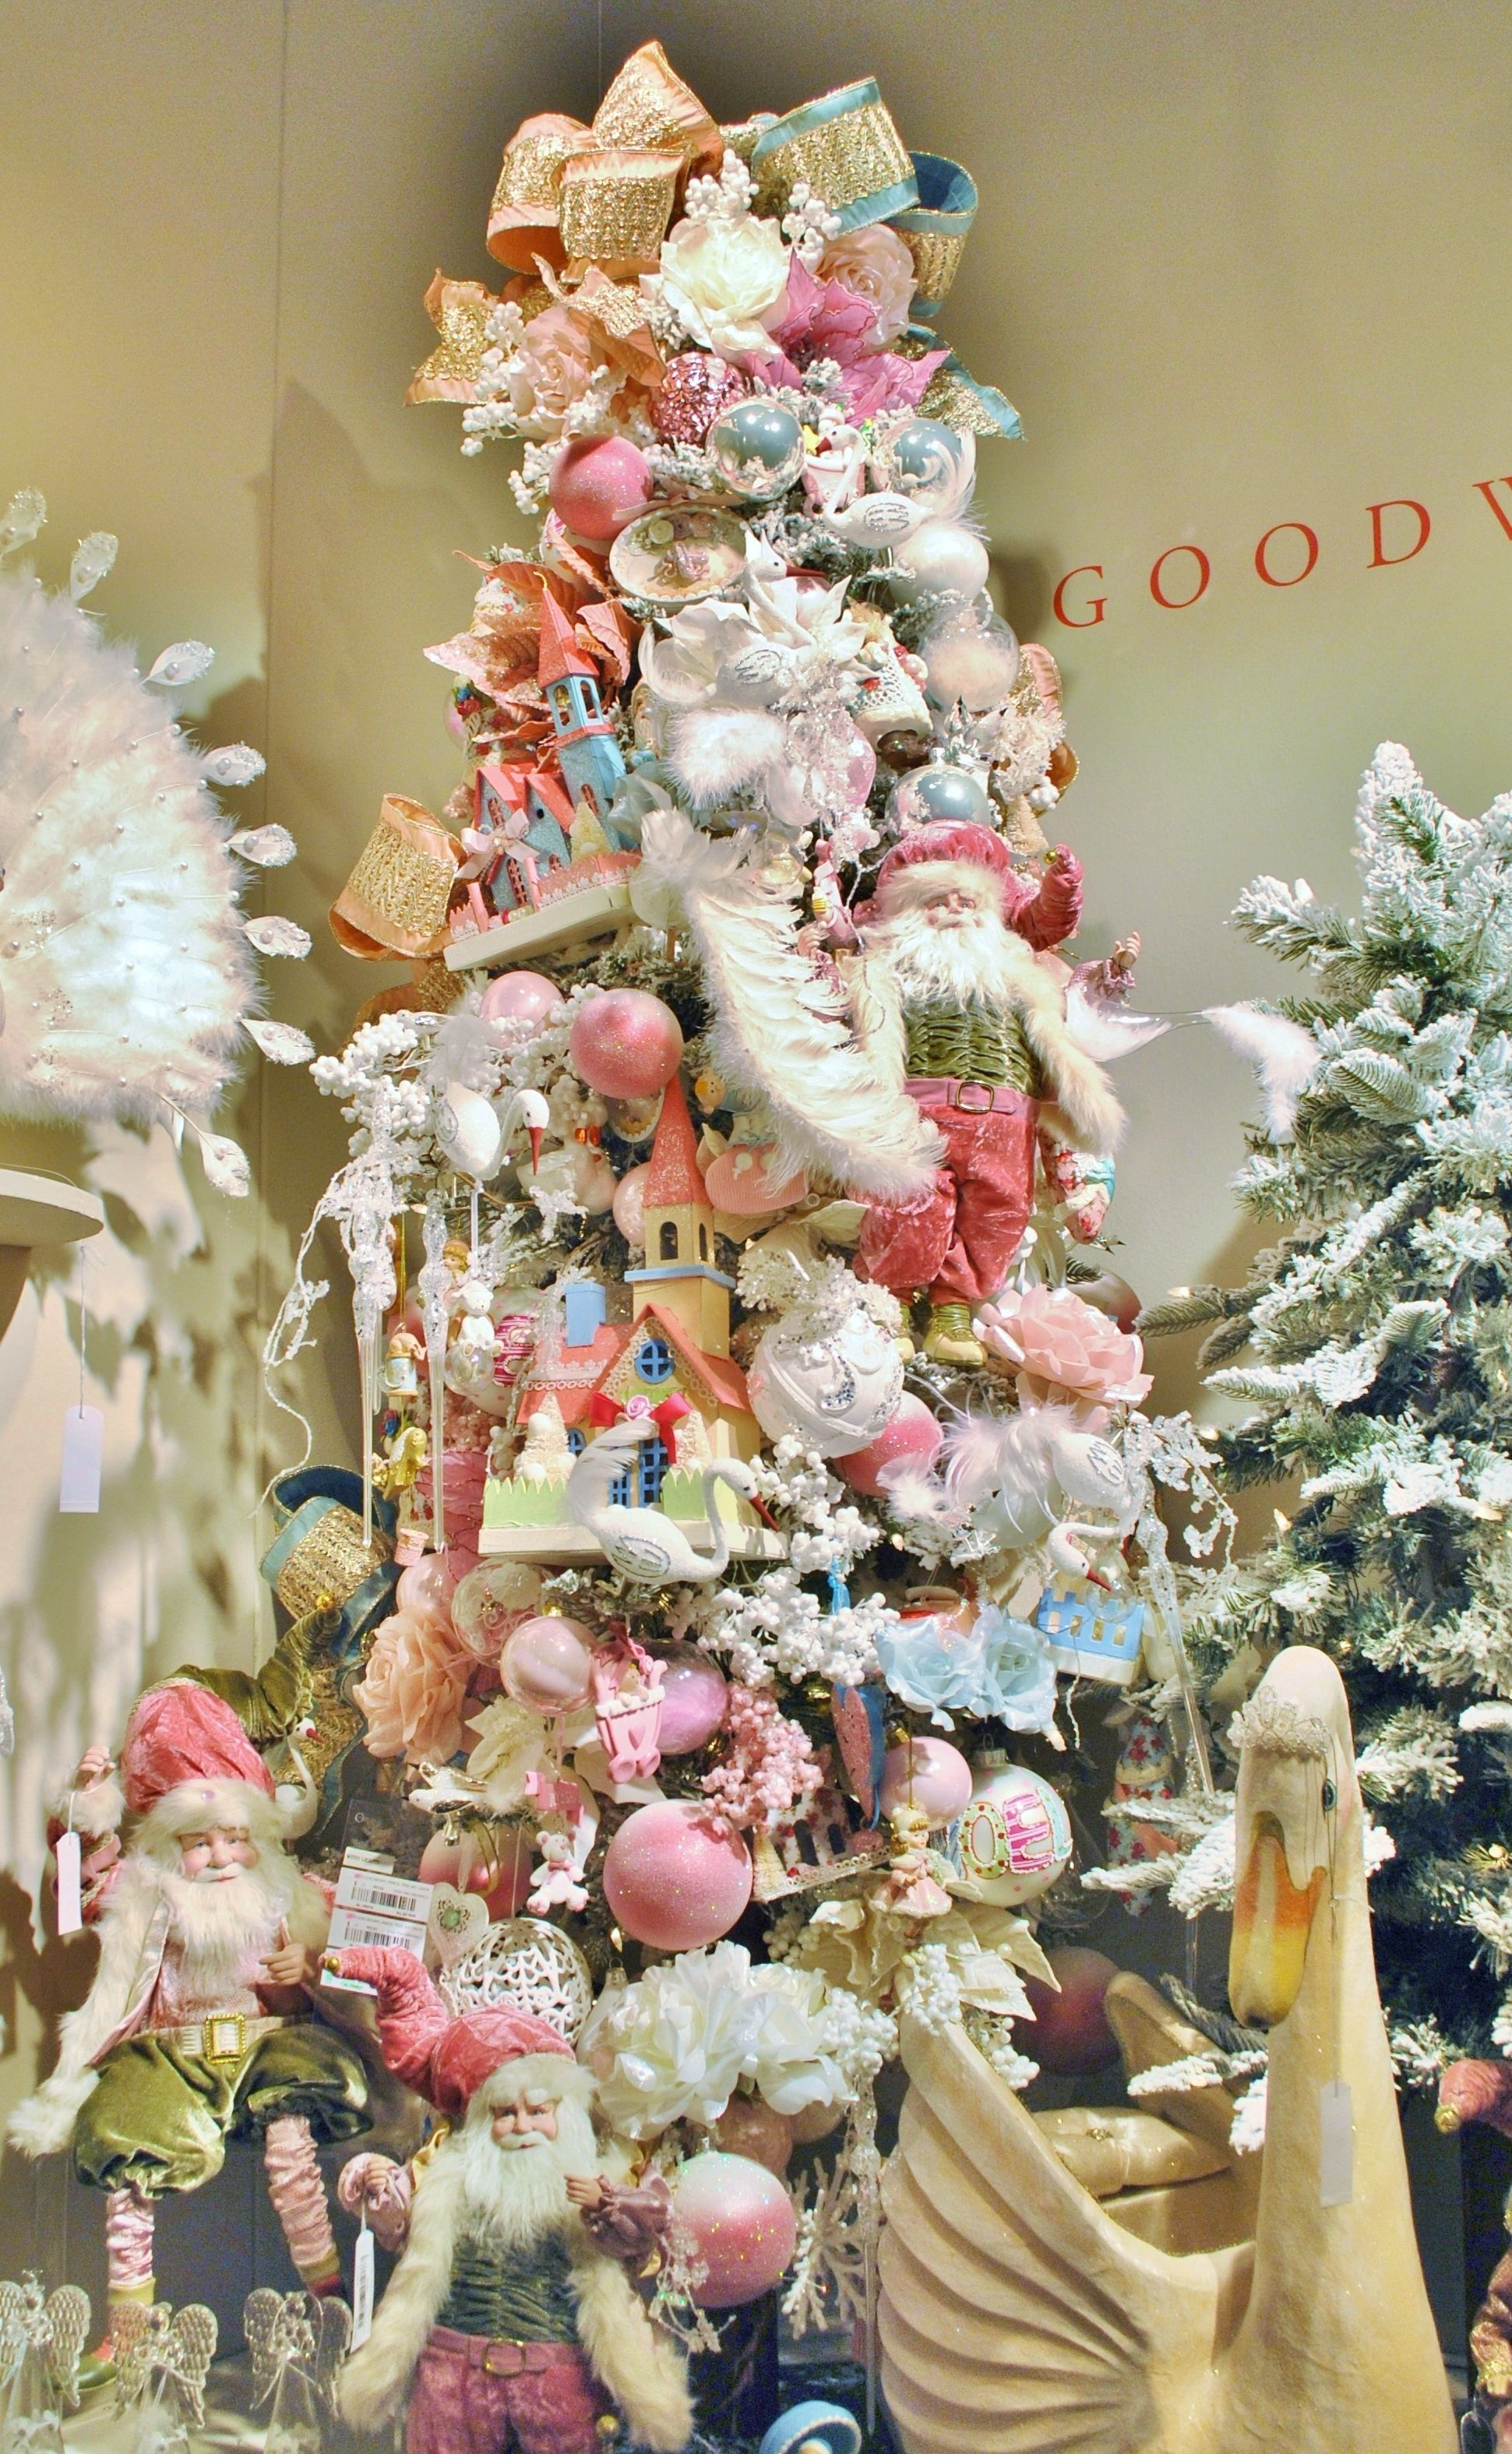 Cute Baby collection by Goodwill Pink Christmas